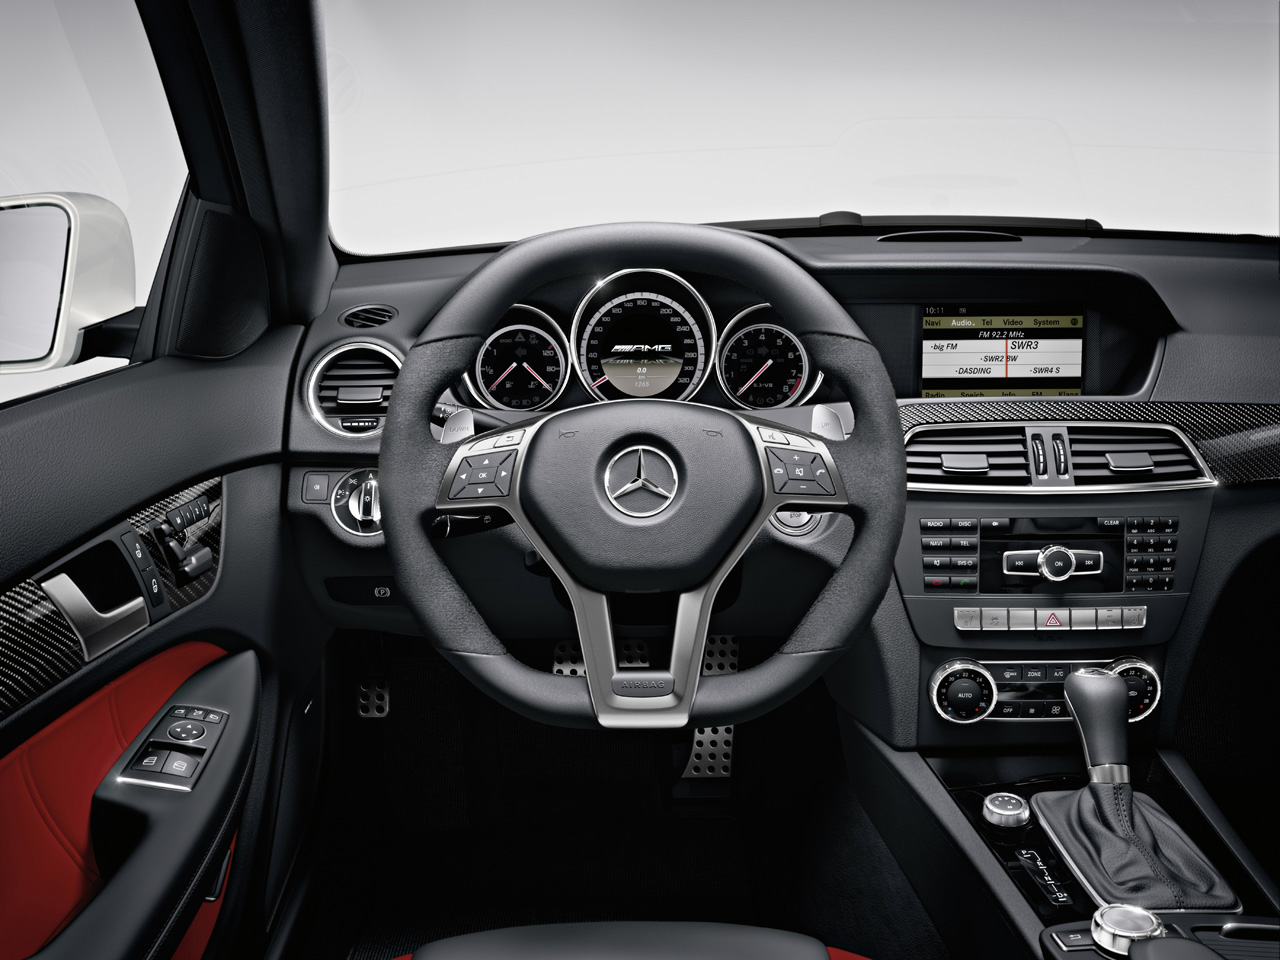 Brabus Mercedes Benz E Class Coupe together with 2014 Mercedes Benz E Class Amg Prototype further Mercedes Unveils 2012 C63 Amg Coupe furthermore 2010 Mercedes Benz E Class Interior Photo 251260 furthermore 1052280 silver Remains Most Popular Color For New Cars Black Close Behind. on 2010 w212 e350 coupe interior